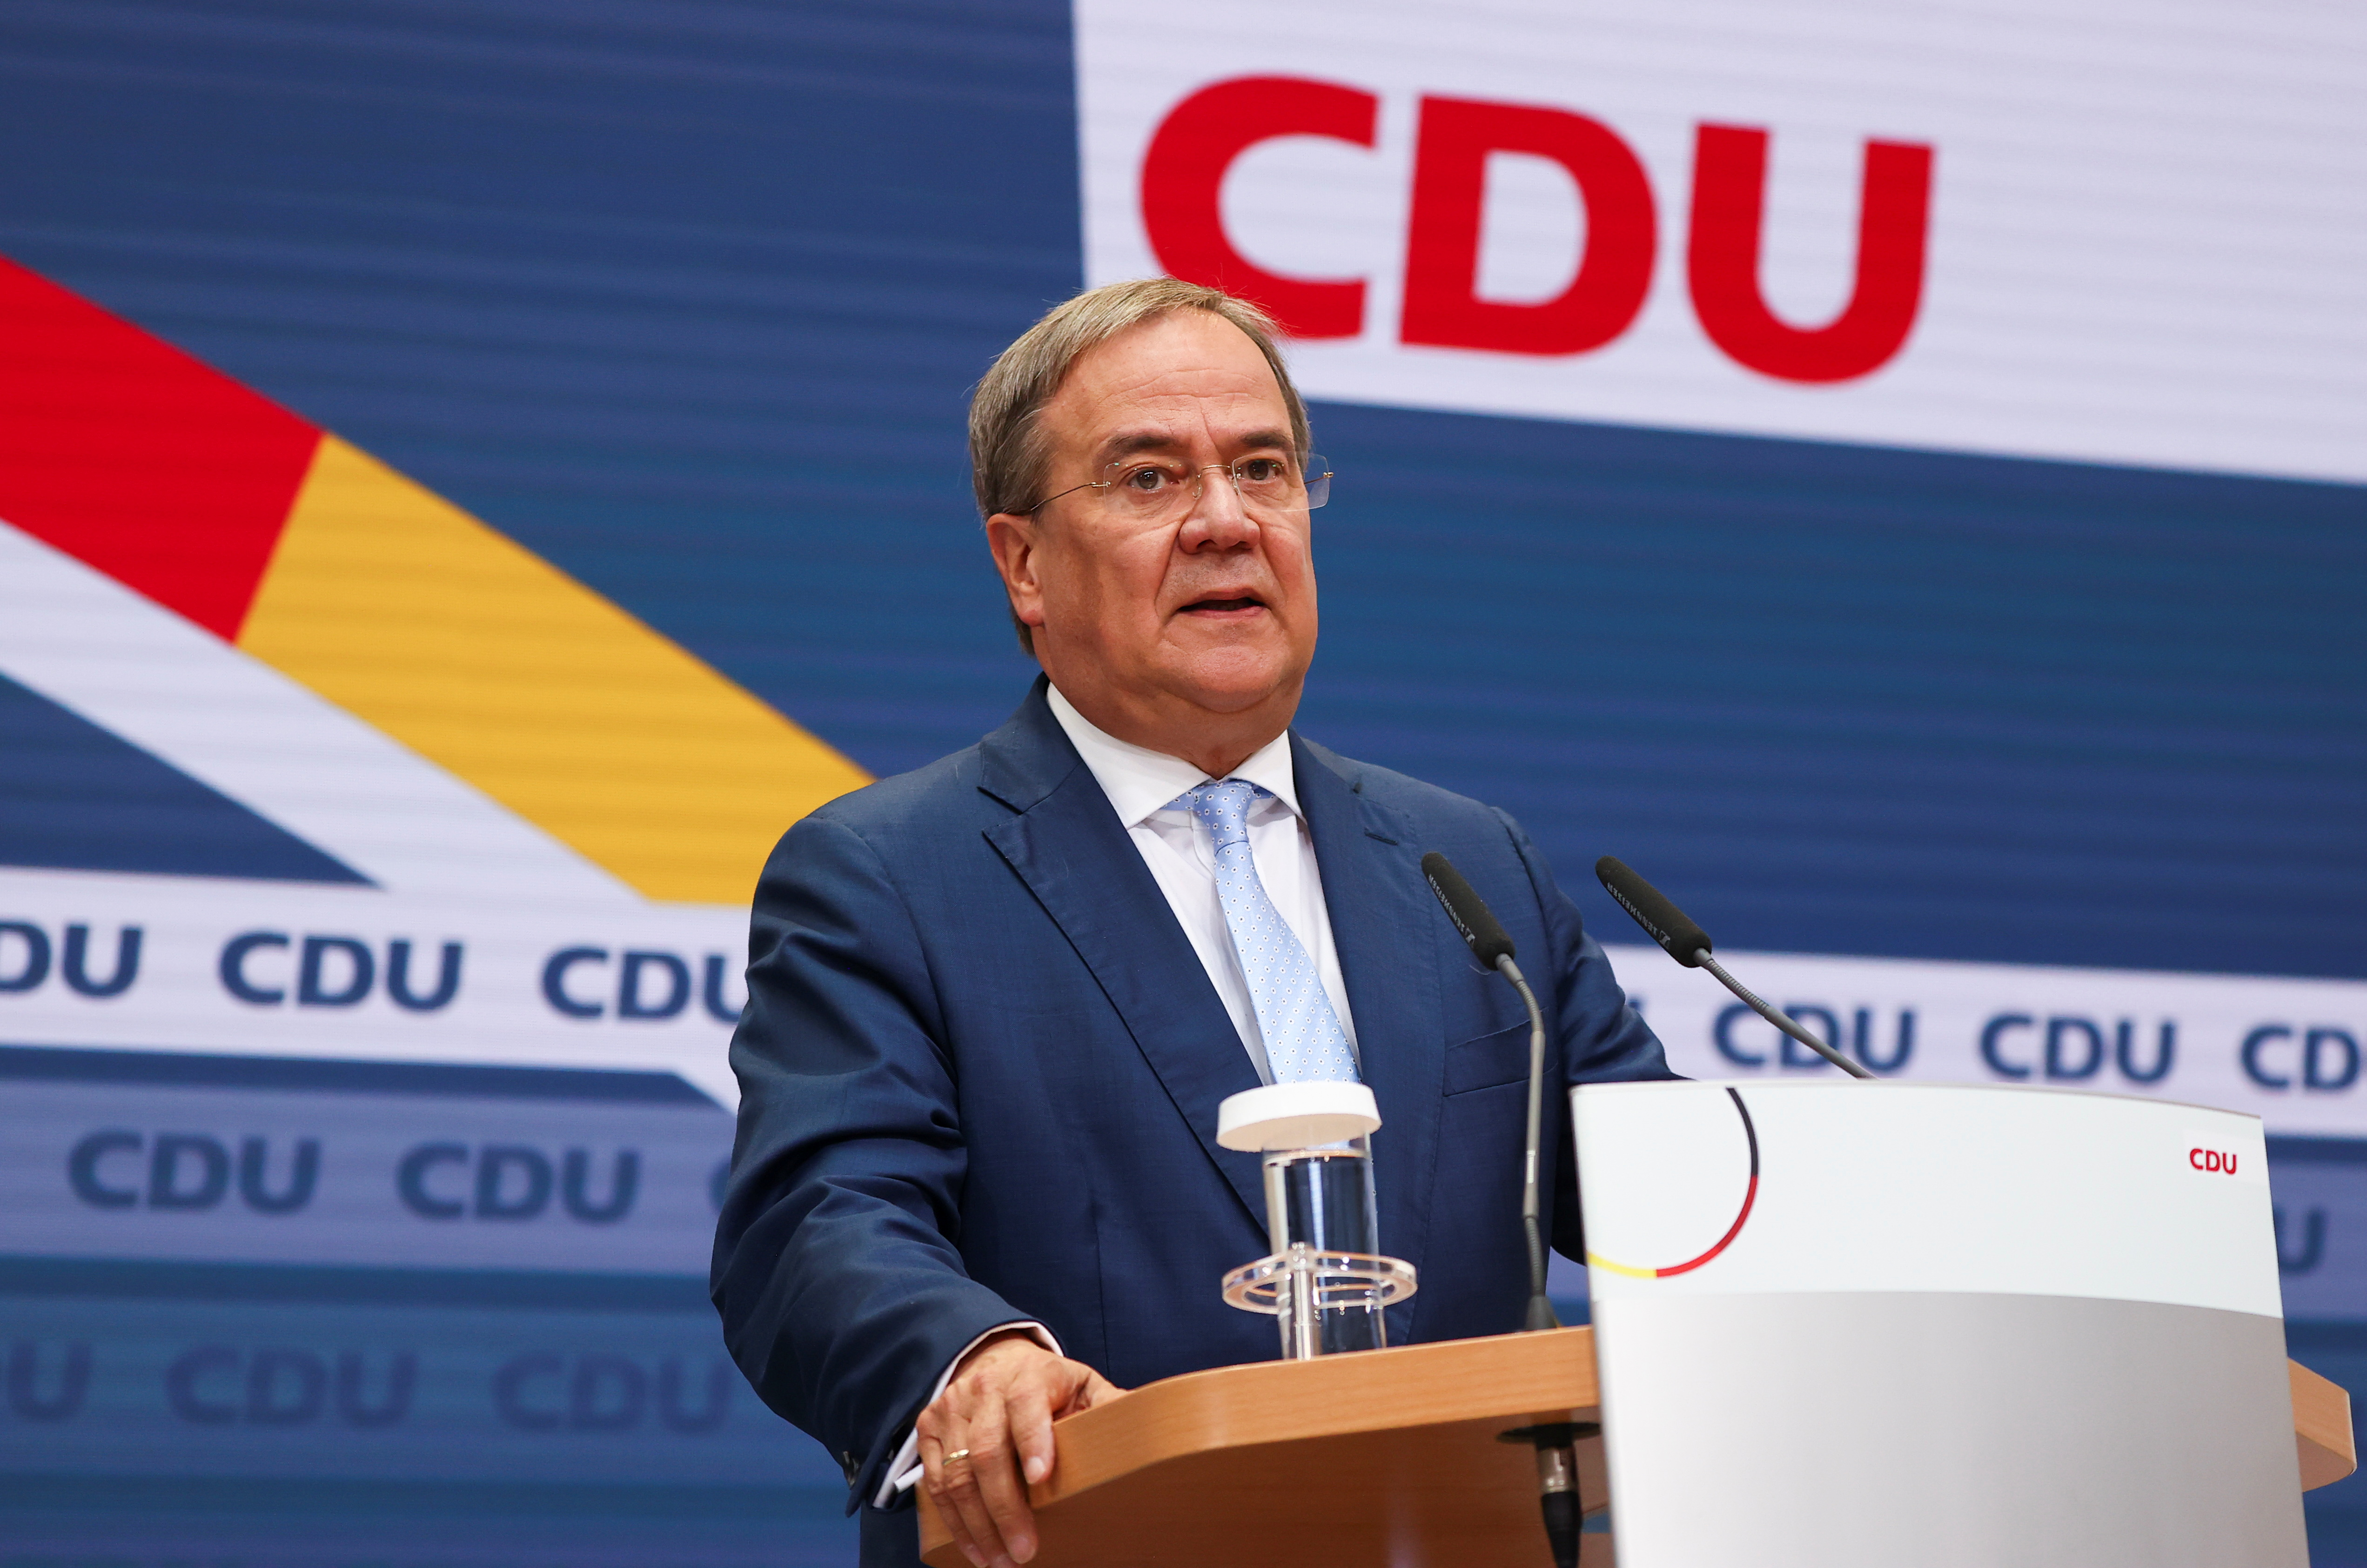 Christian Democratic Union (CDU) leader and top candidate for chancellor Armin Laschet holds a news conference, one day after the German general elections, in Berlin, Germany, September 27, 2021. REUTERS/Fabrizio Bensch